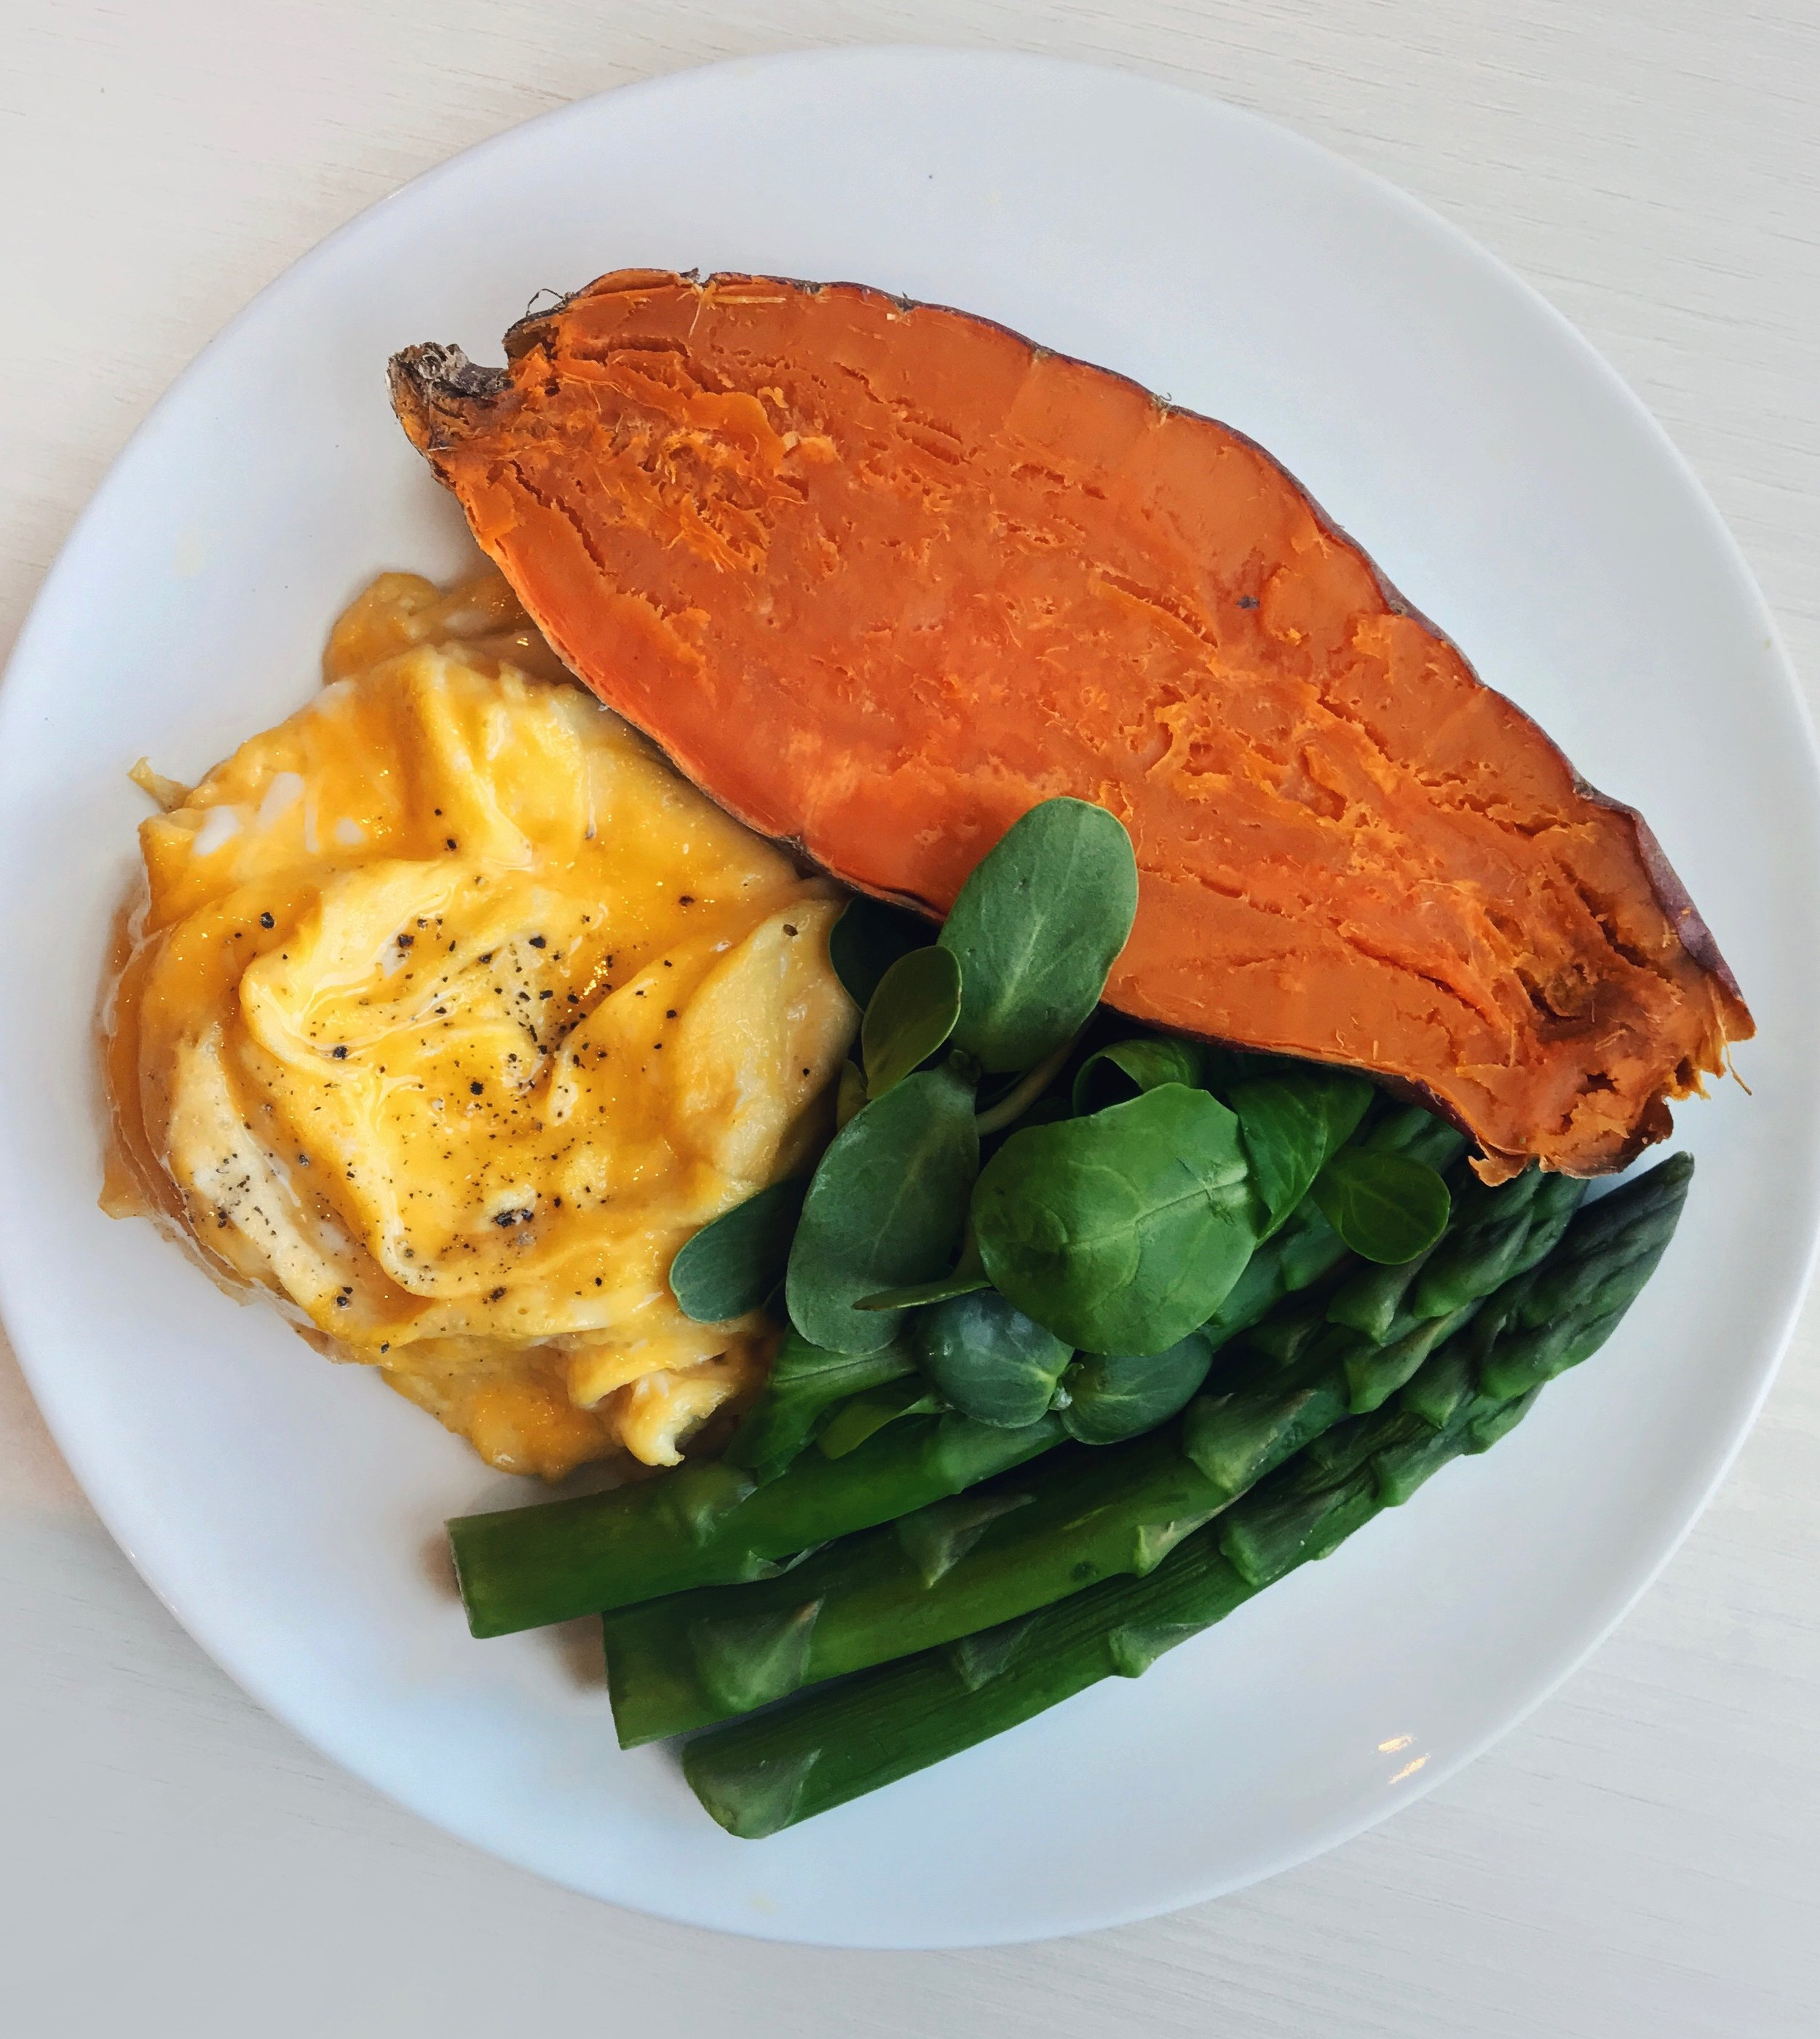 Roasted Sweet Potato, Scrambled Eggs & Greens - Baked sweet potato (baked for about 30mn in the oven at 390F/200C)+steamed asparagus + scrambled eggs (directions in the tutorial section)+microgreens +saladIf lacking time and if you have one, you can also cook it in a microwave for about 5min in a humidified paper towel.